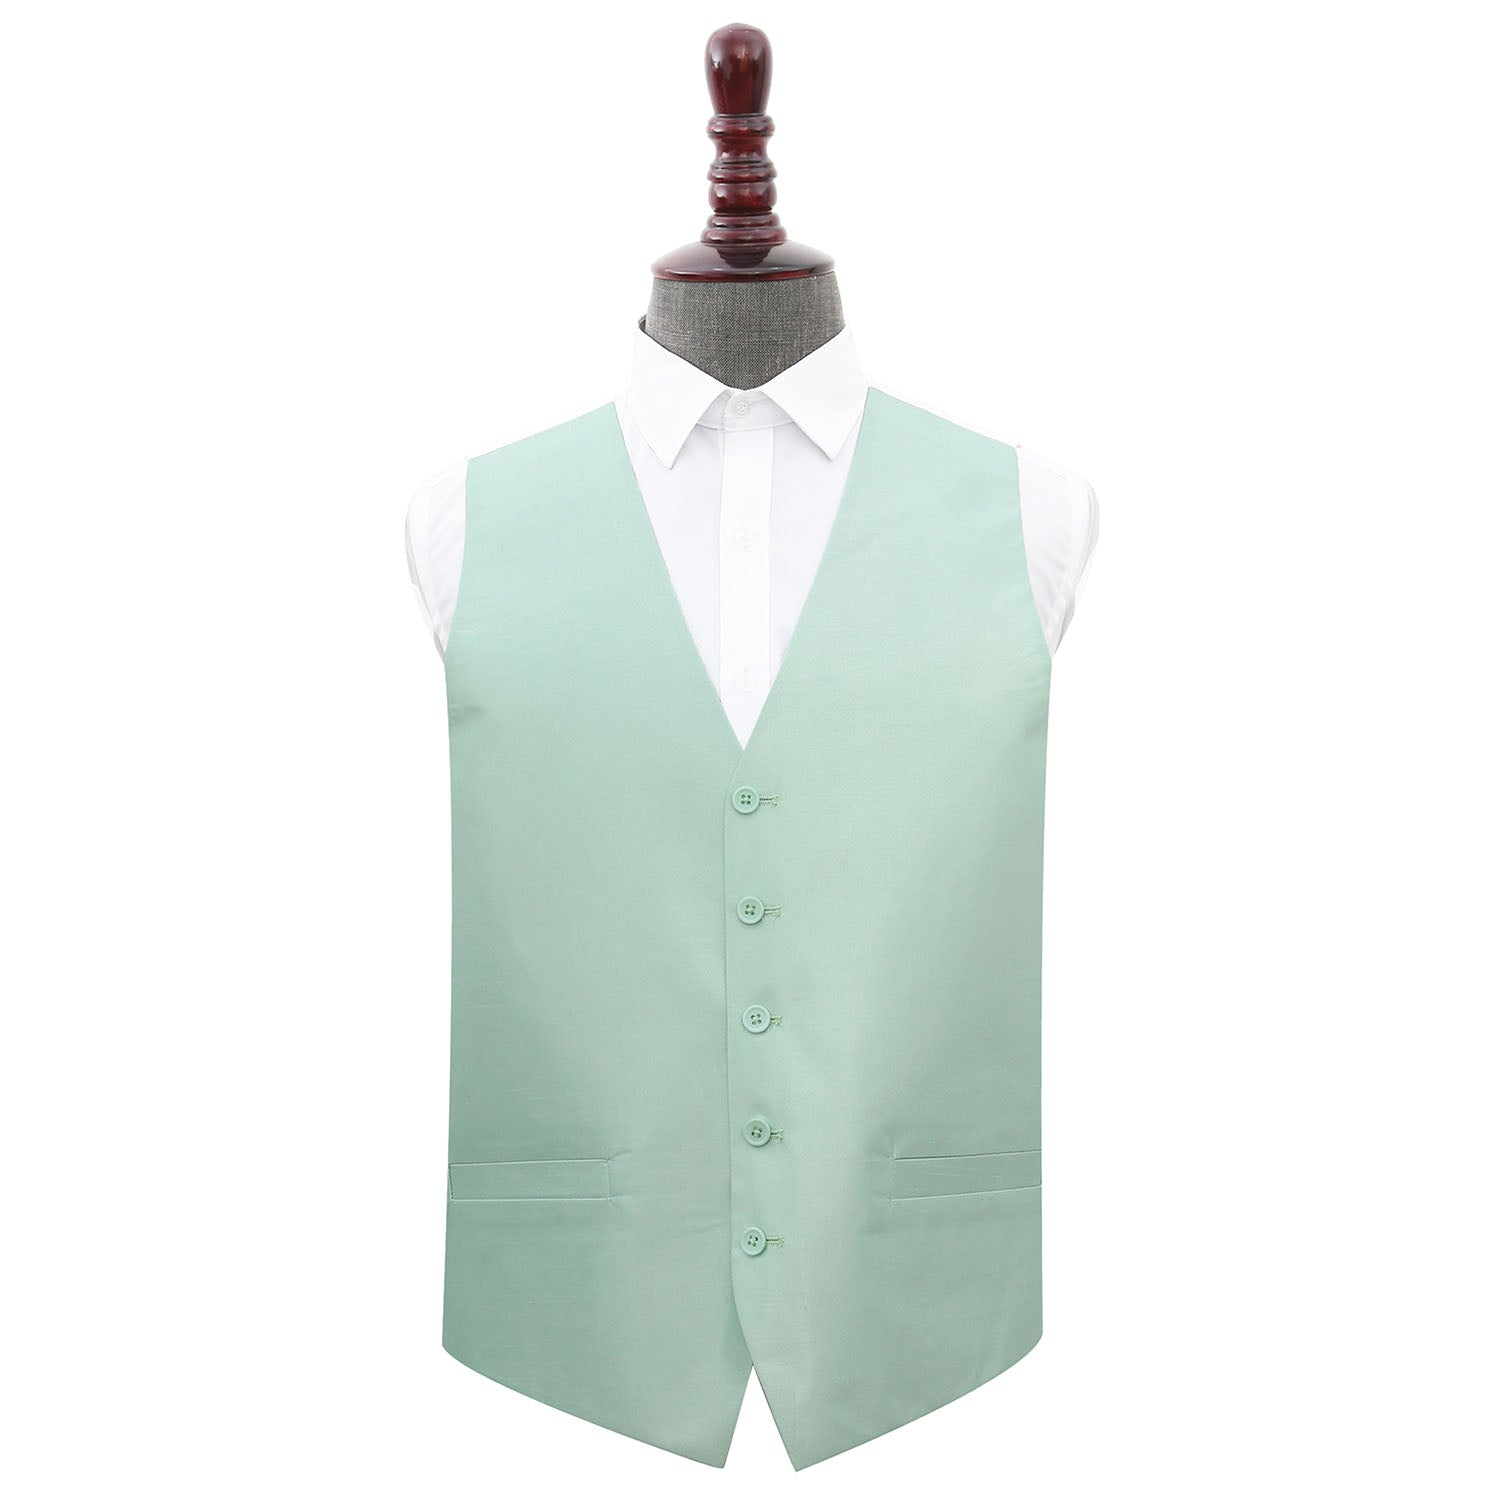 Plain Shantung Wedding Waistcoat - Dusty Green, 40', Clothing & Accessories by Low Cost Gifts